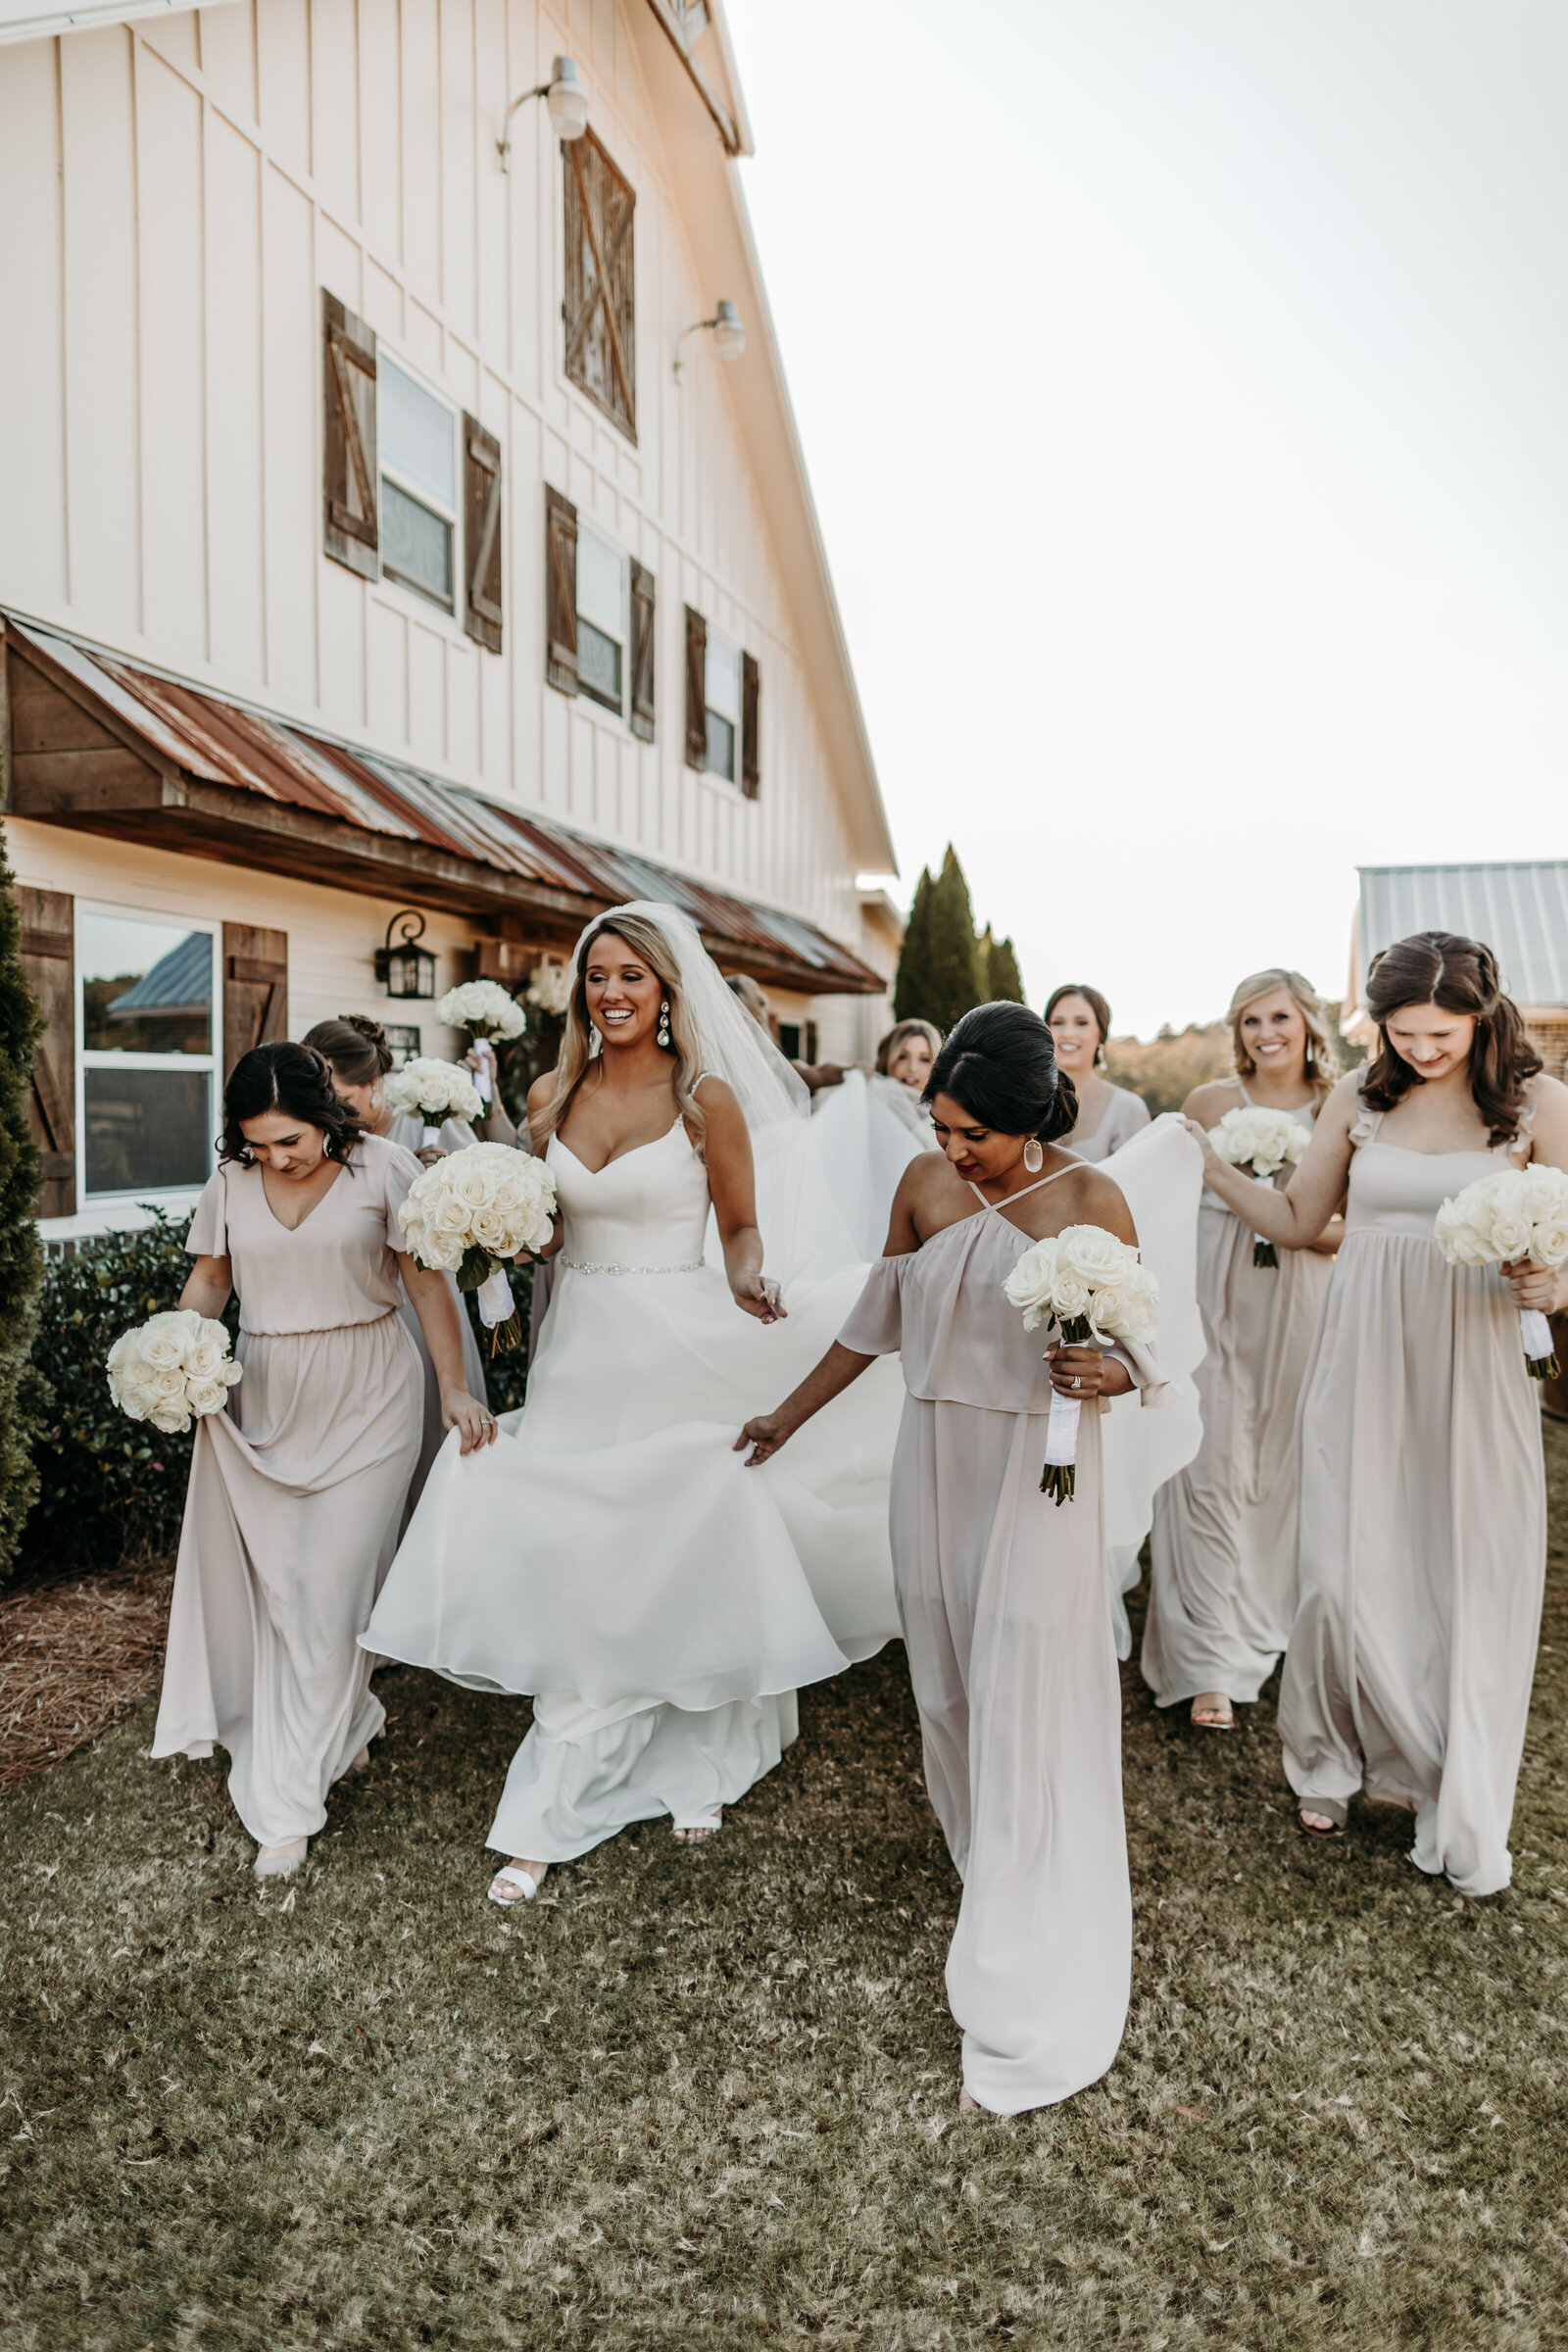 J.Michelle Photography photographs bride and bridesmaids at vintage oaks farm wedding in Athens, Ga